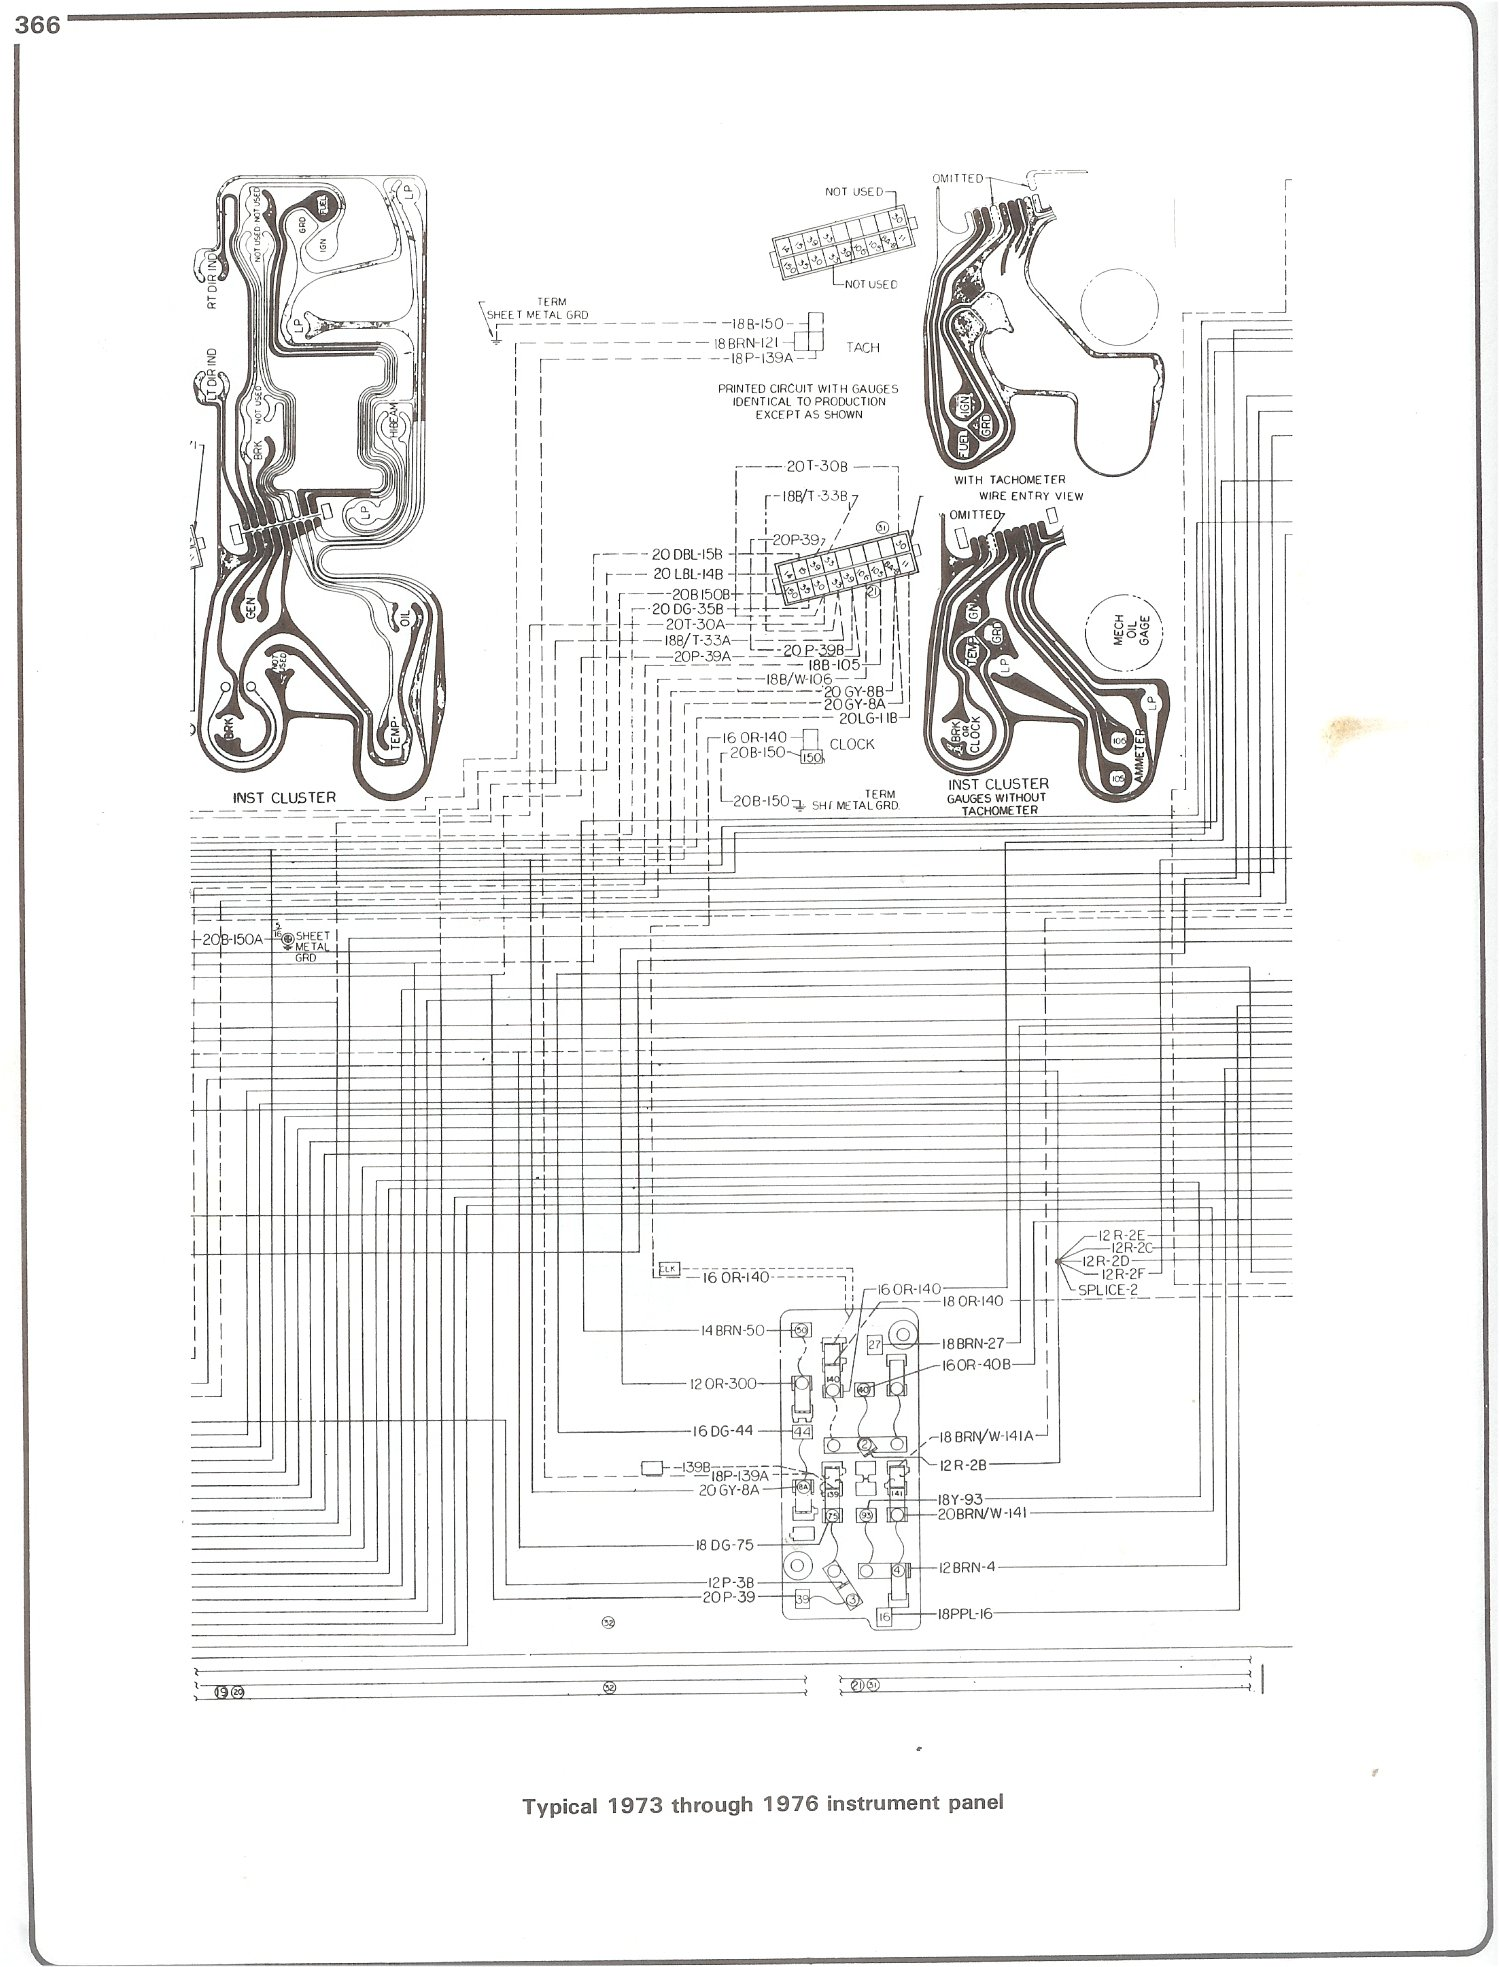 Chevy Wiring Diagrams Trucks Library 1972 Chevrolet C10 Diagram Instrument Complete 73 87 Gm For 78 Blazer